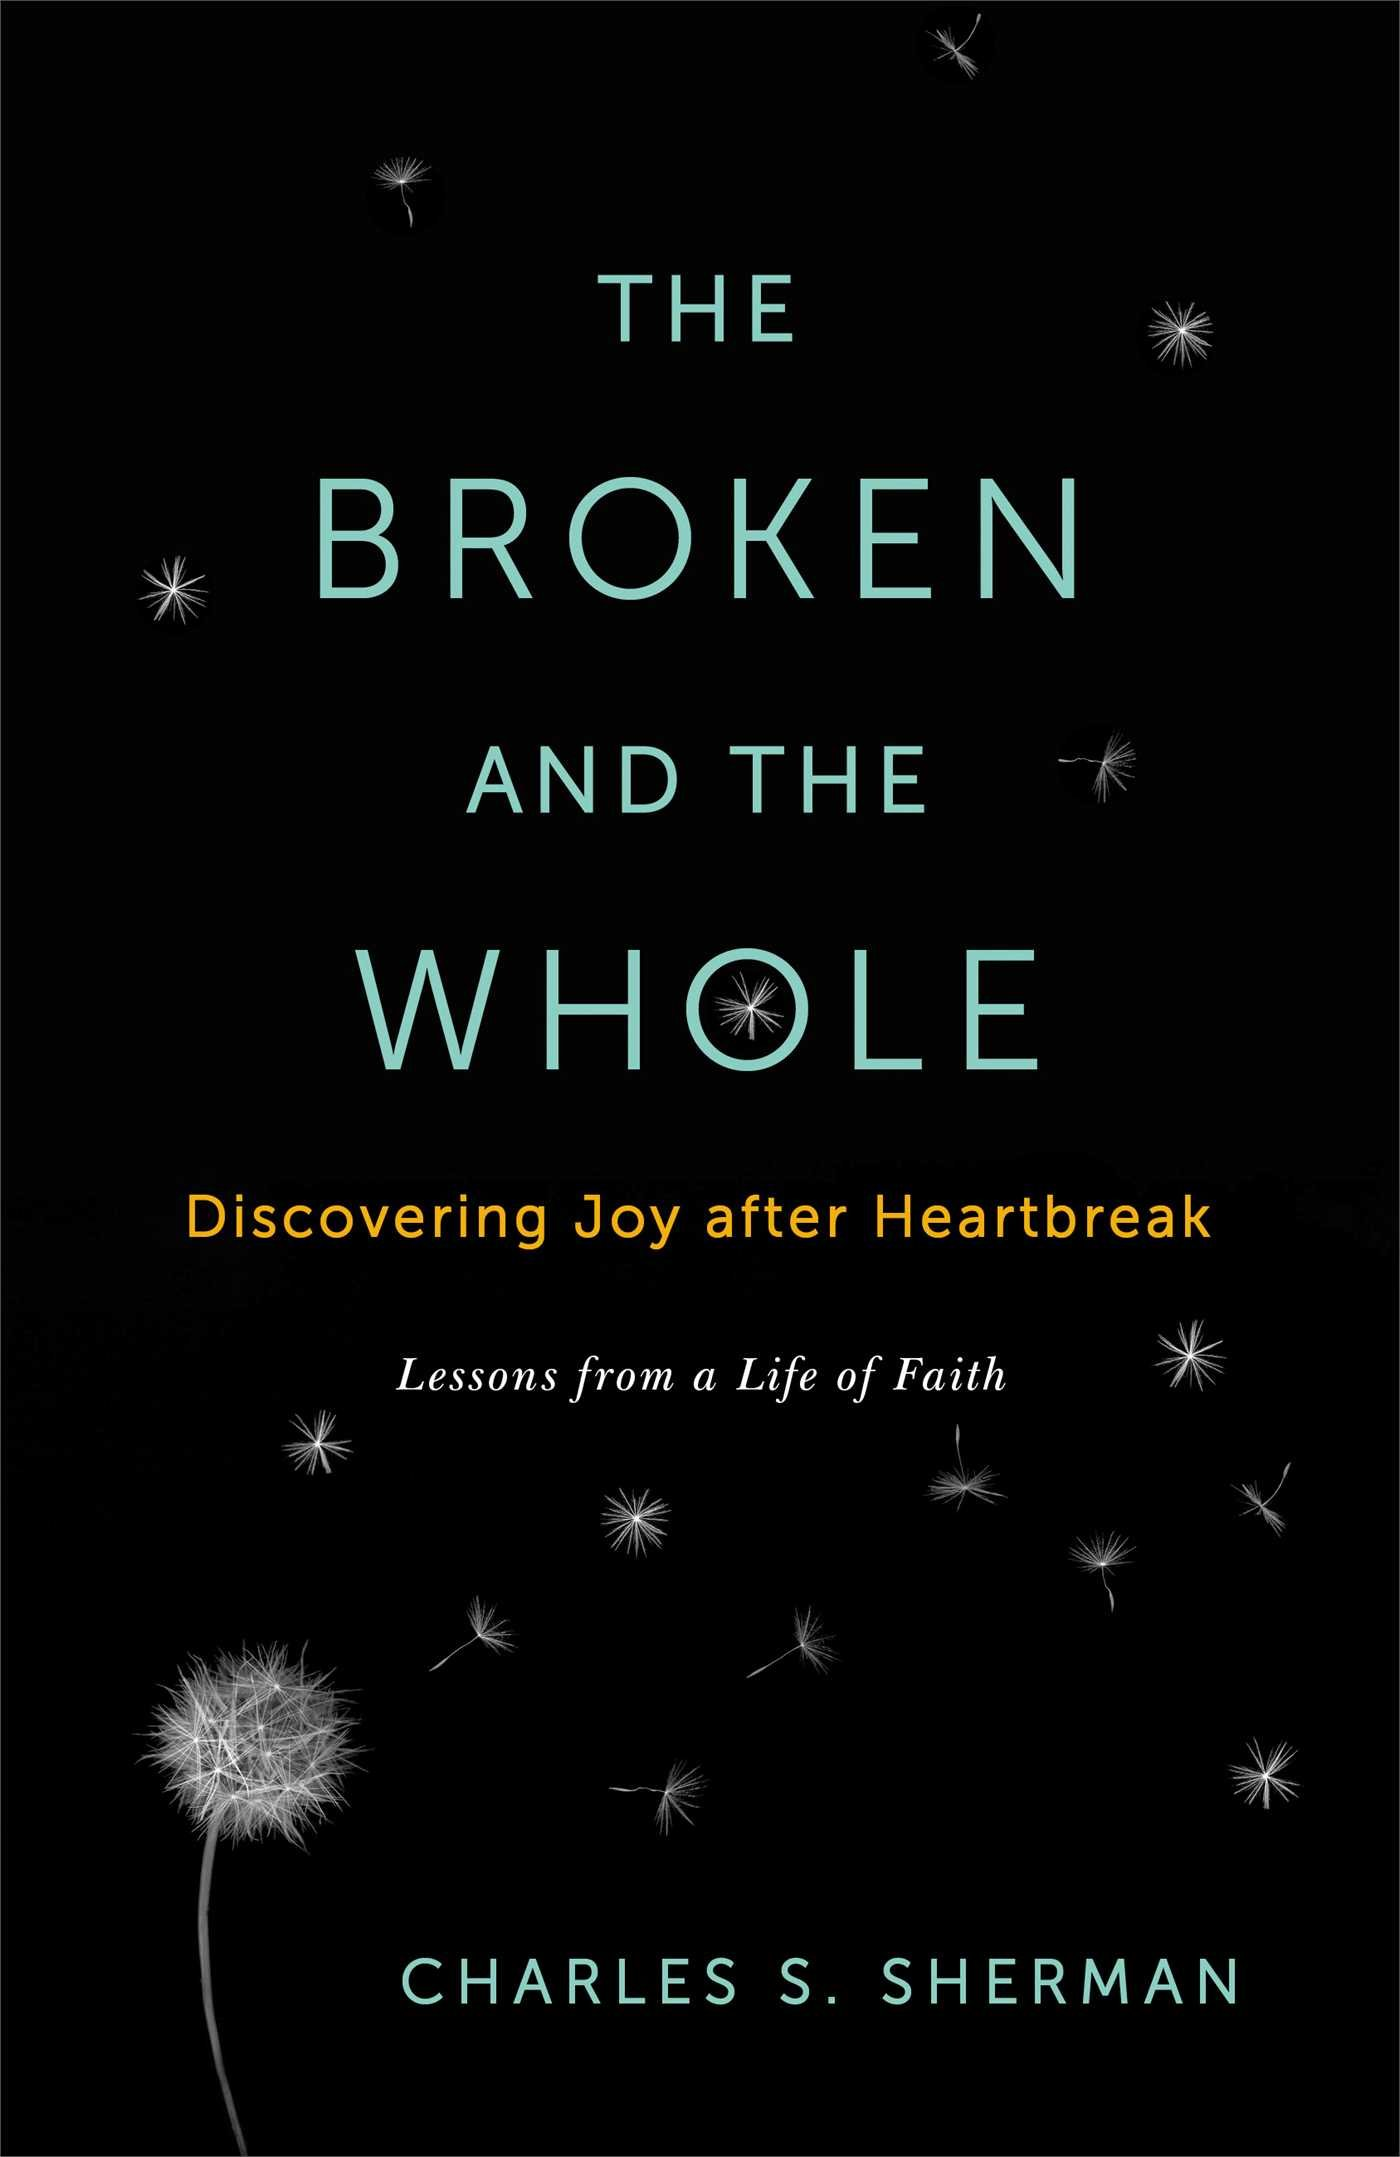 Sherman – The Broken and the Whole: Discovering Joy after Heartbreak.